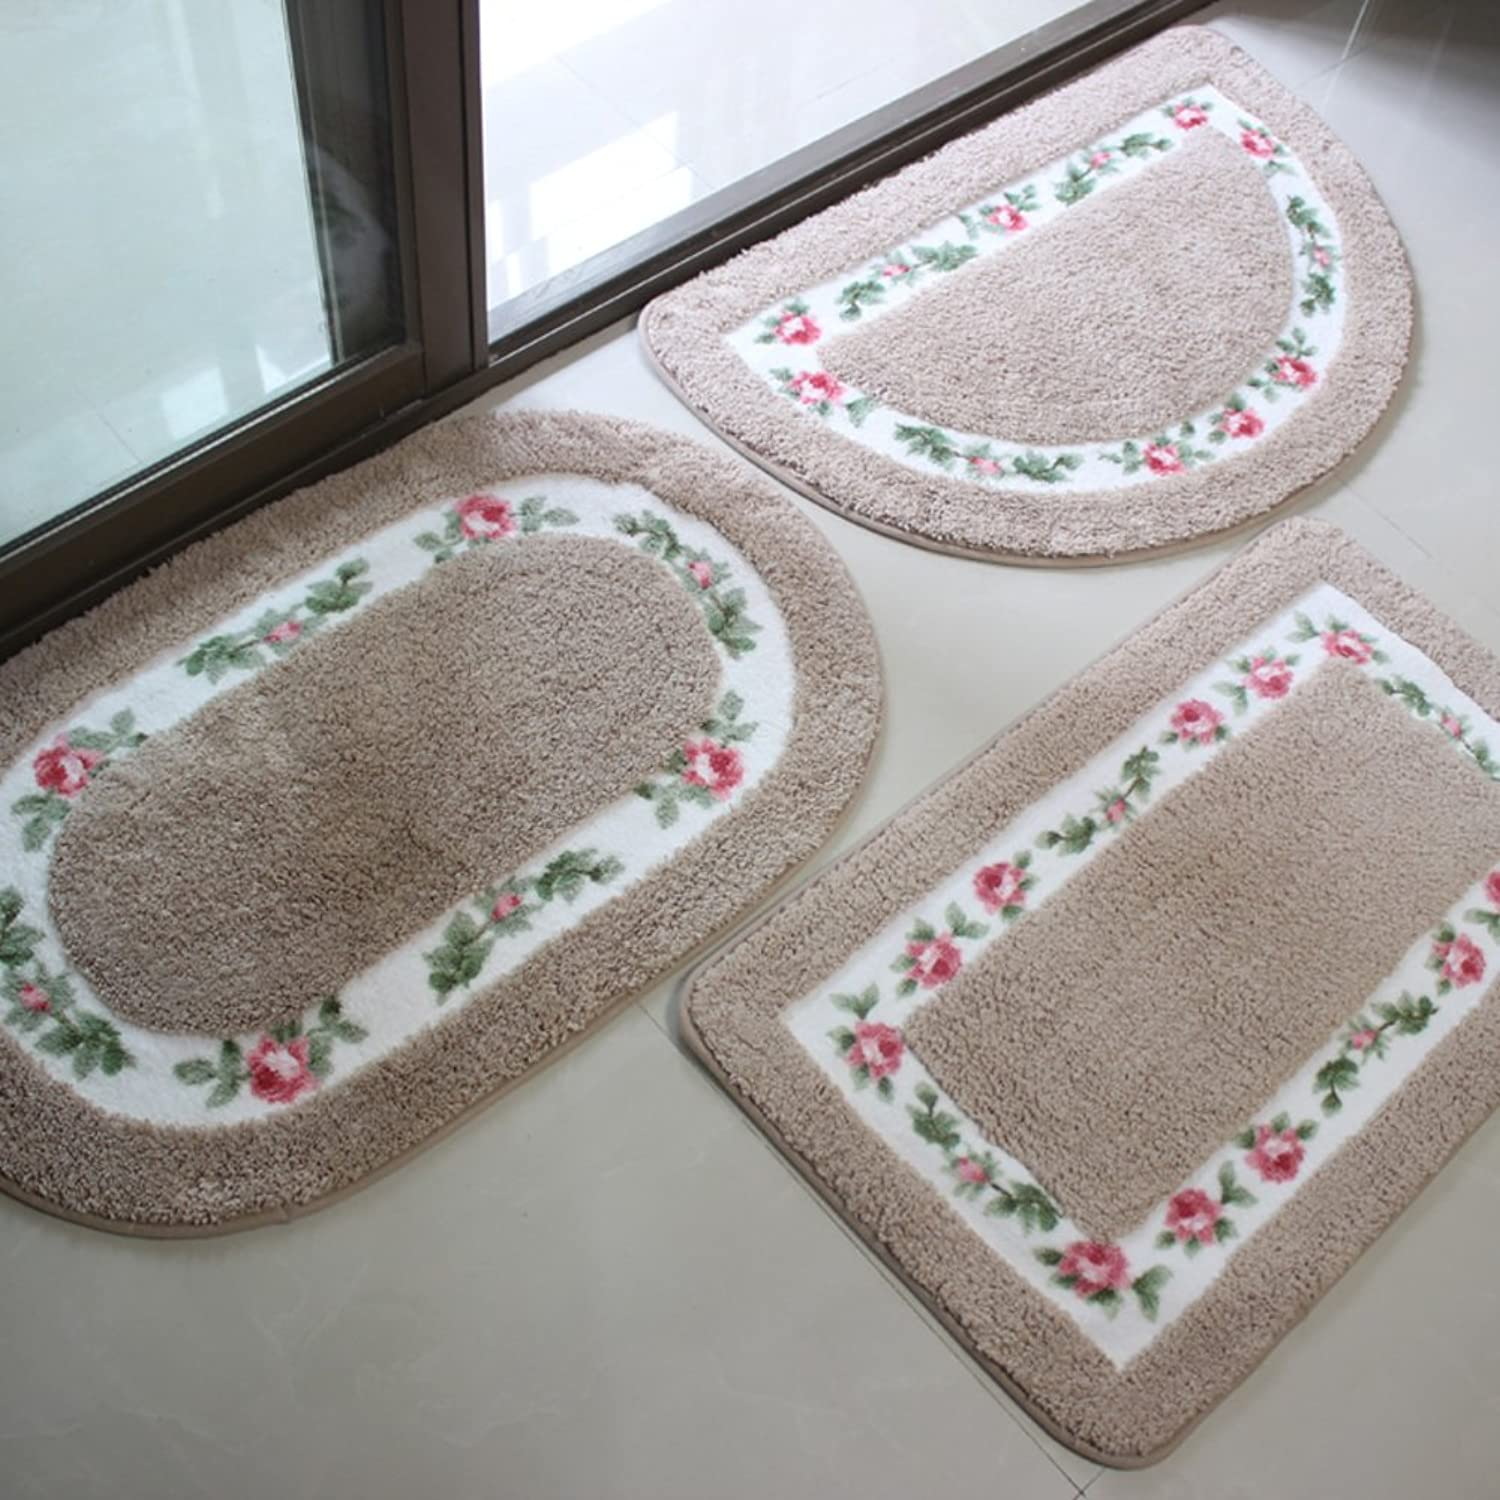 Water-Absorbing Non-Slip Door mat1 for Bathroom, Kitchen,Living Room,Bedroom-E 45x75cm(18x30inch)